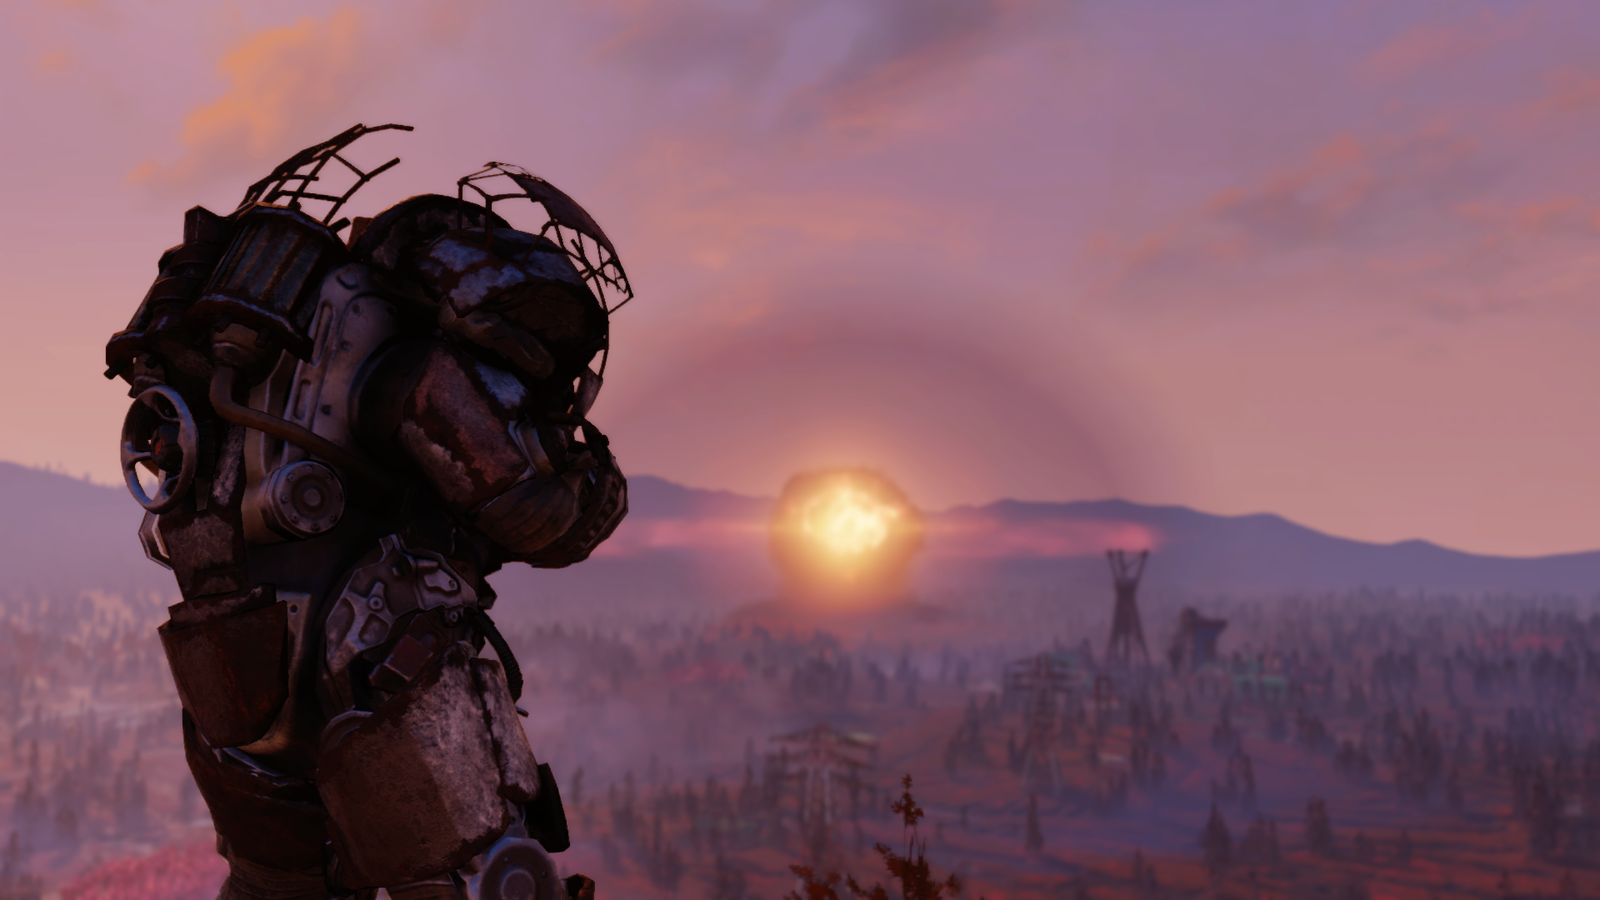 Fallout 76's New Patch Brings Unexpected Changes And More Tedium